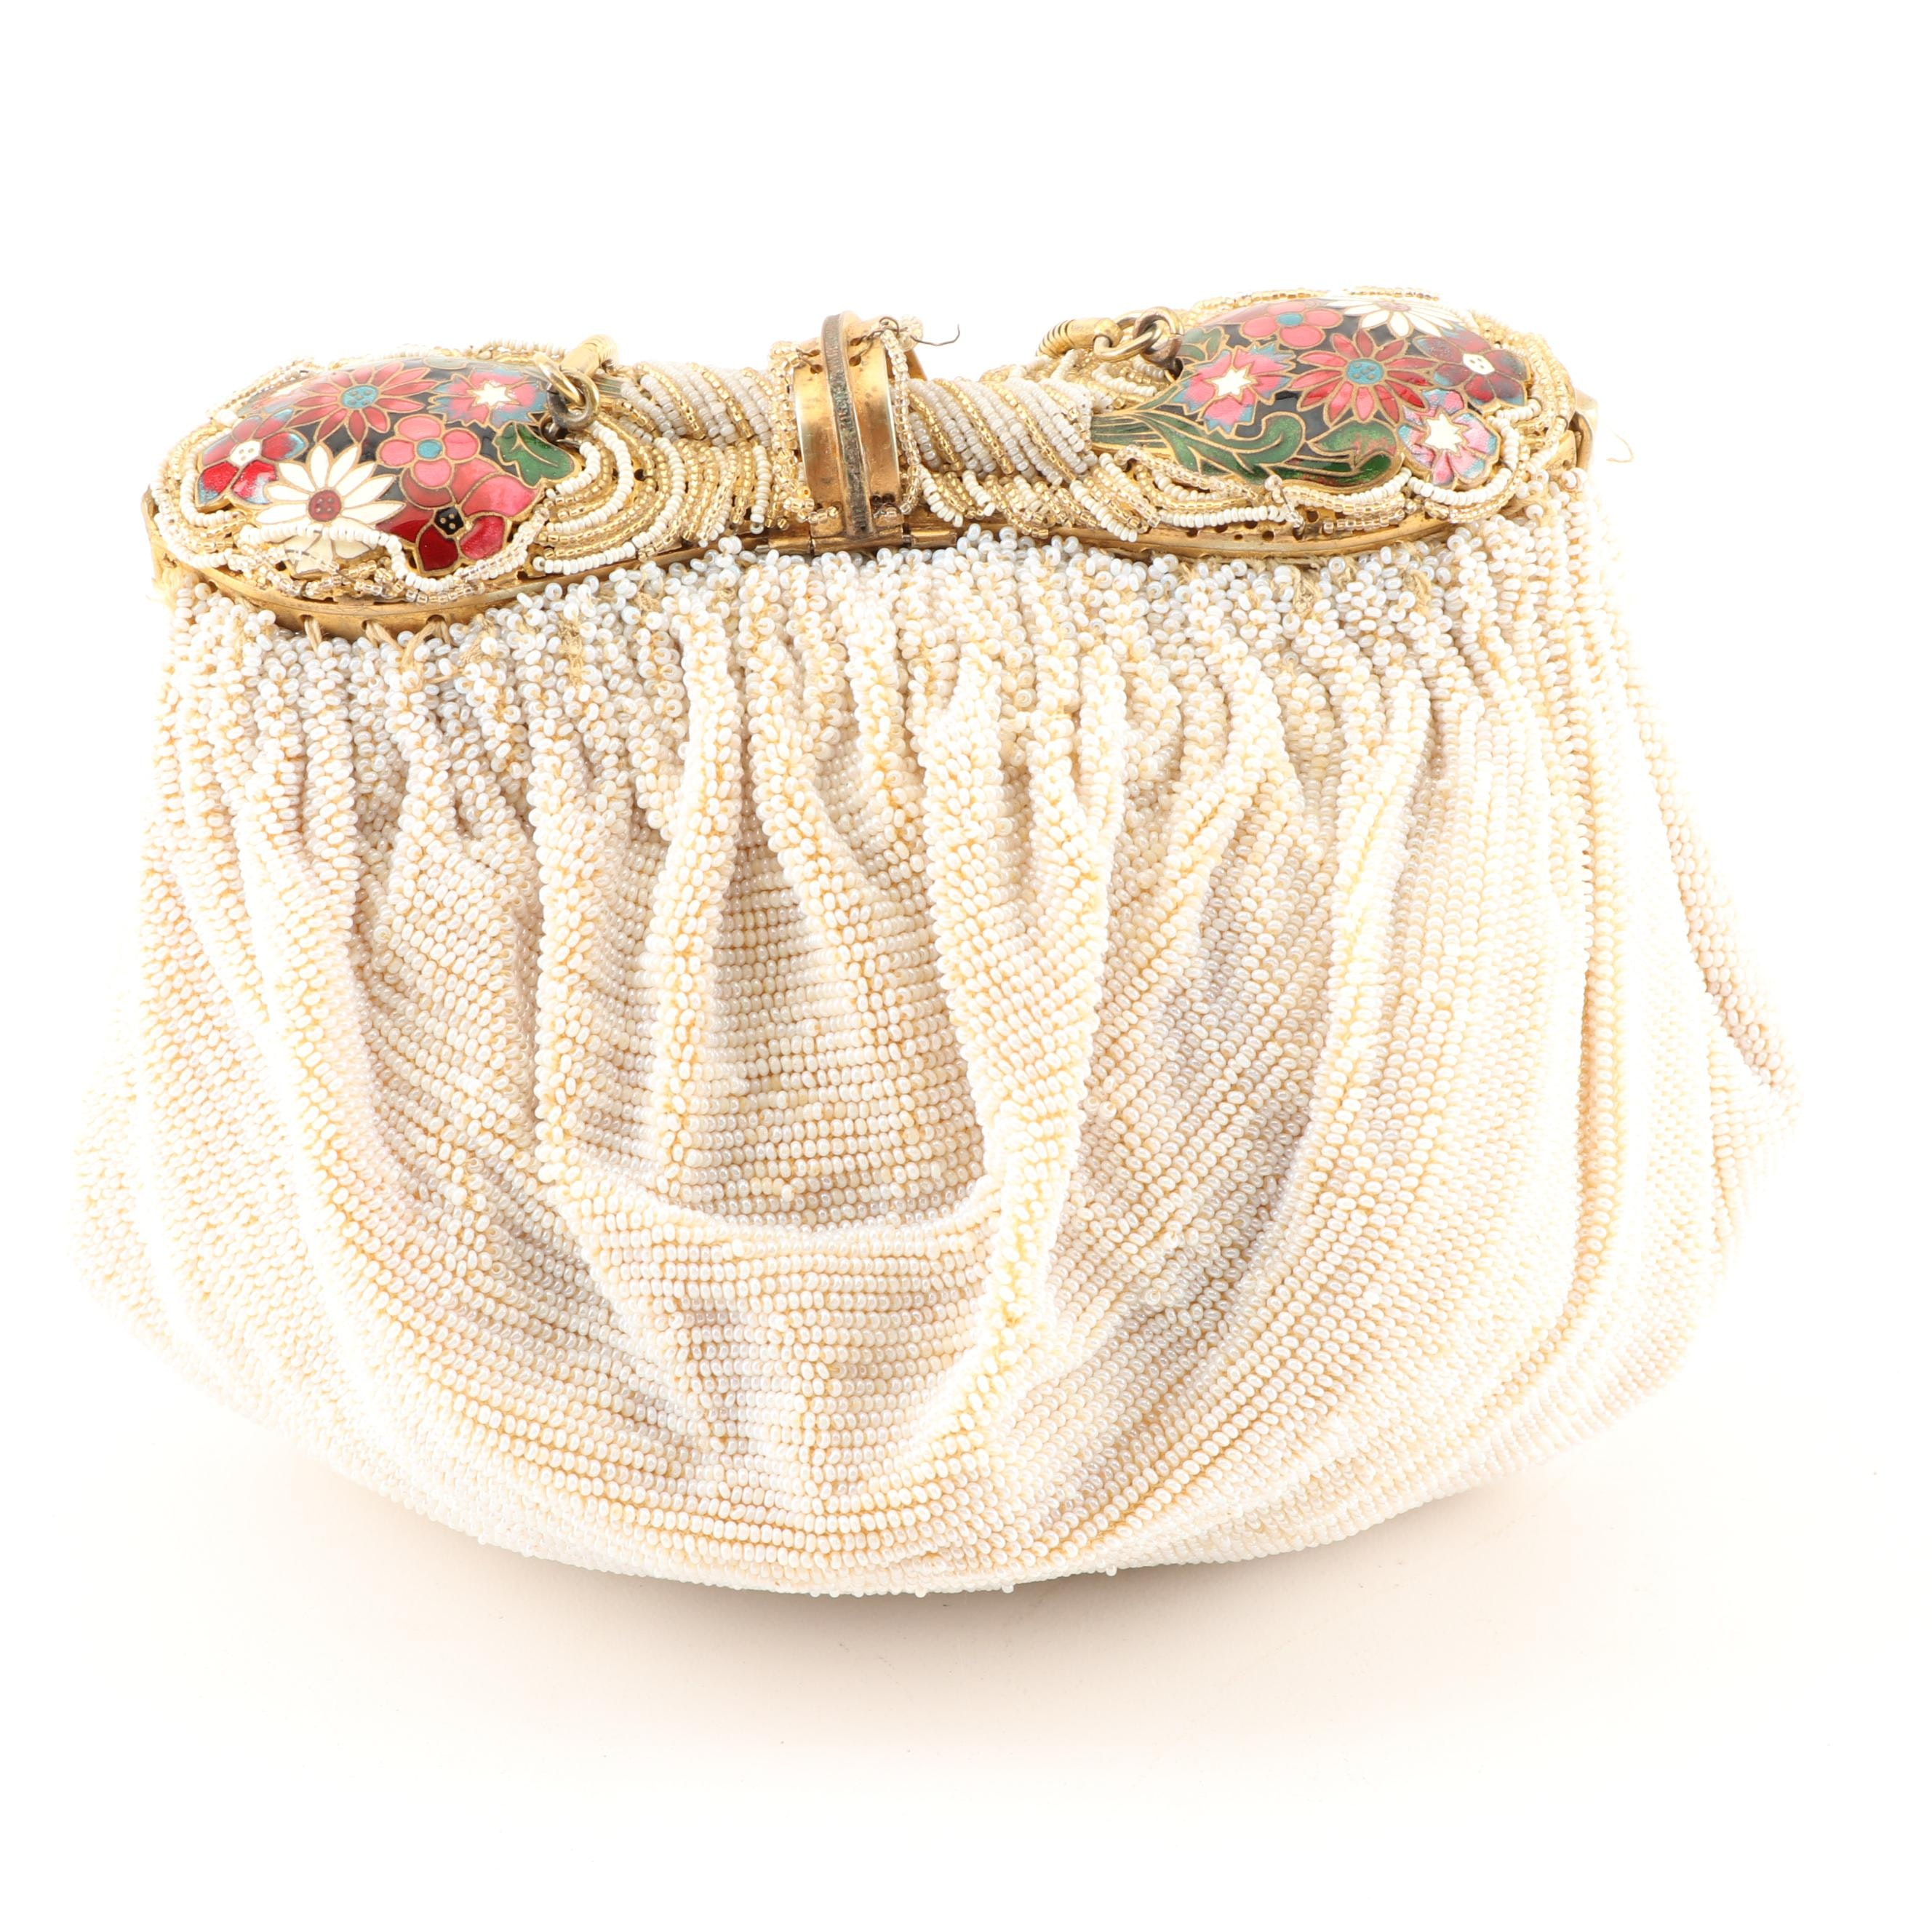 Delill Bead and Enameled Purse with Chain Strap and Coin Purse, Mid-20th Century